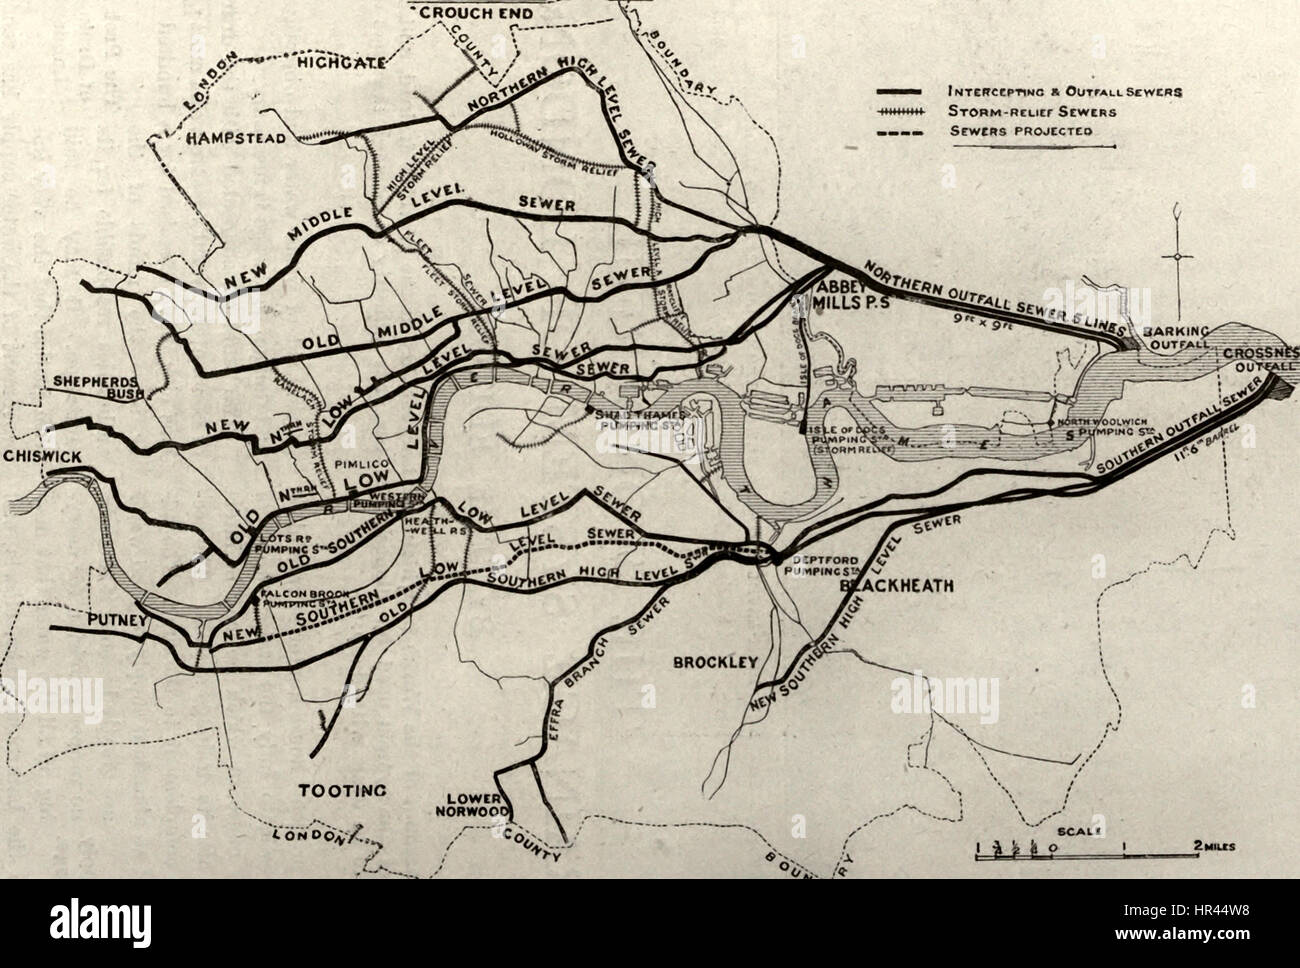 Map showing the intercepting, outfall, and main storm relief sewers of the London drainage system, circa 1909 - Stock Image